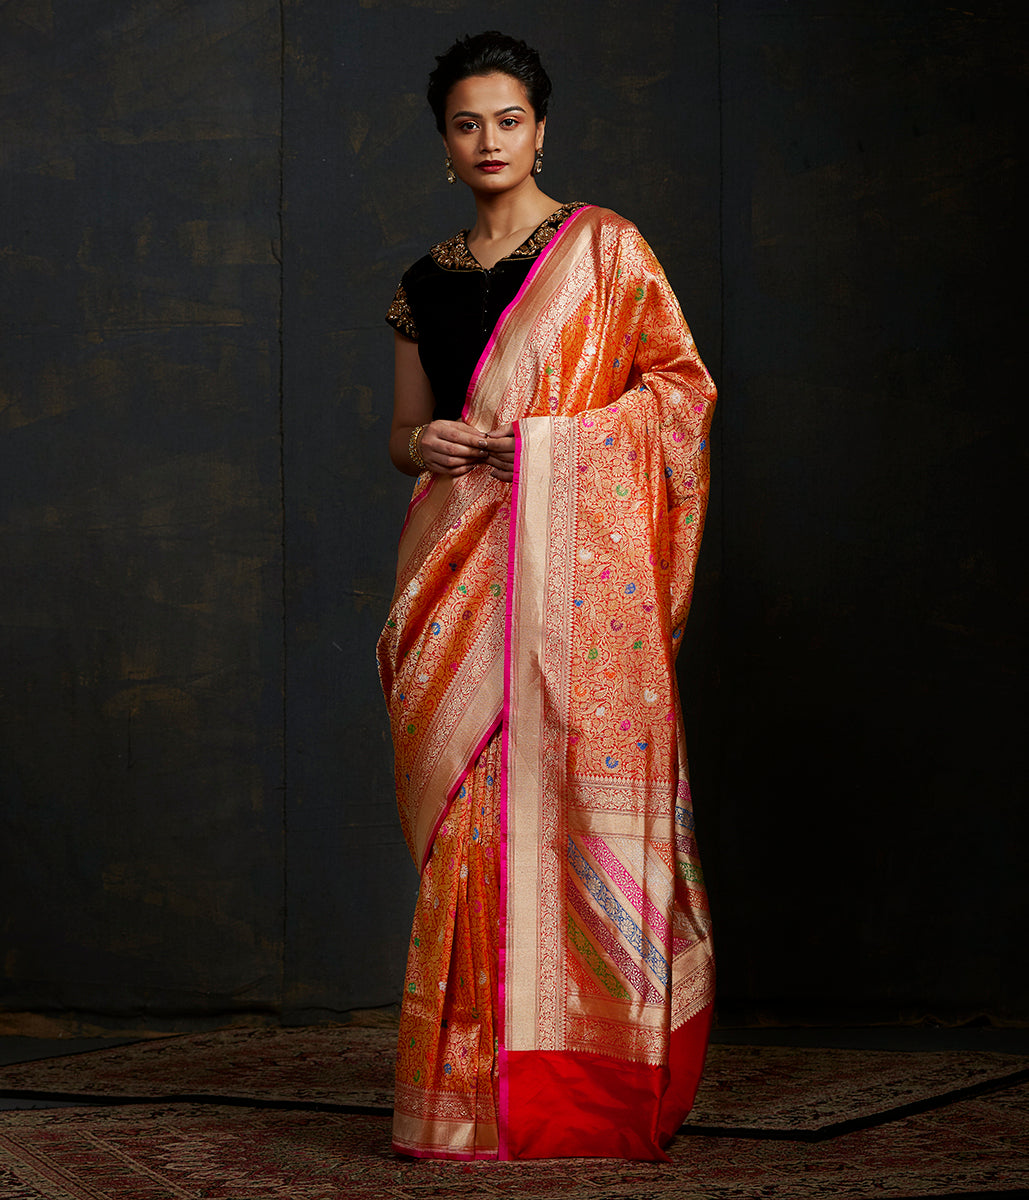 Tomato red and gold meenakari kimkhab saree with a bright pink selvedge